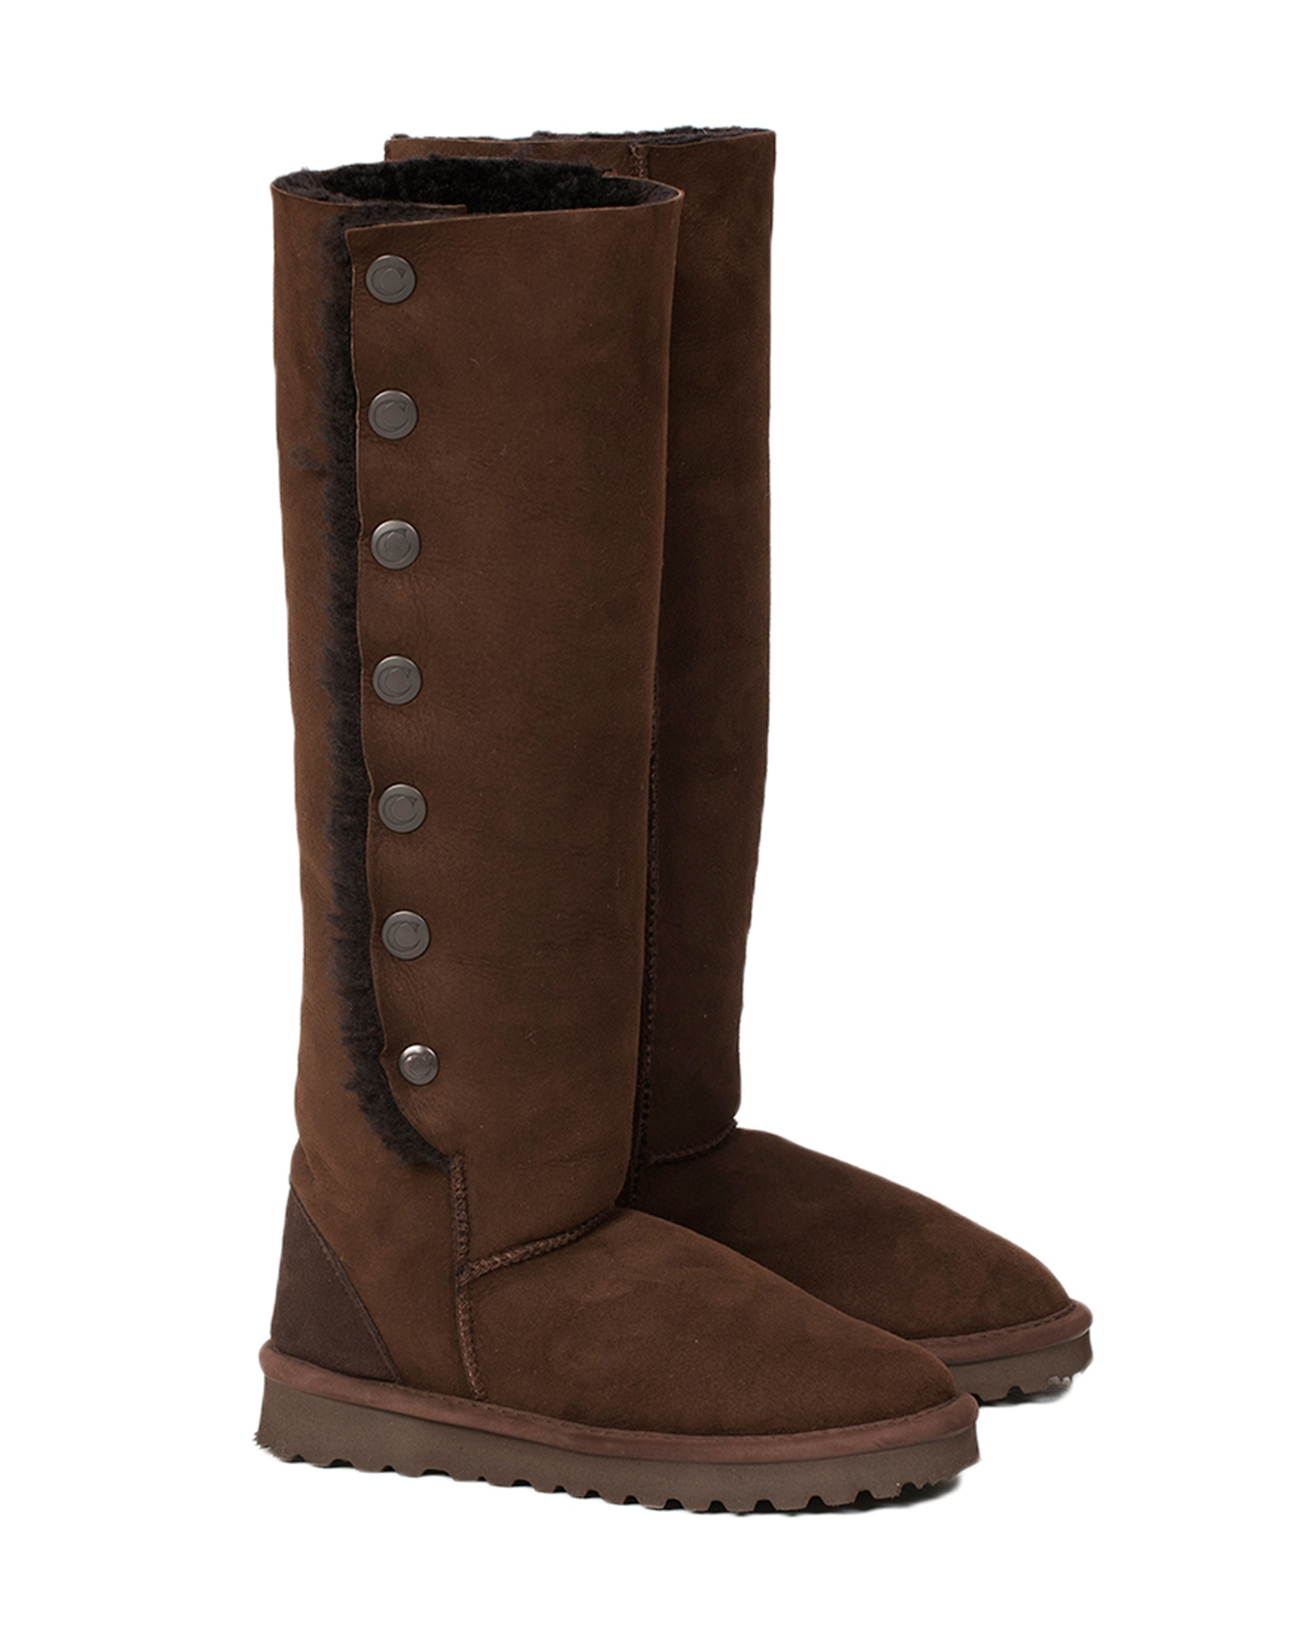 Popper Knee Boots - Size 5 - Mocca - 1646